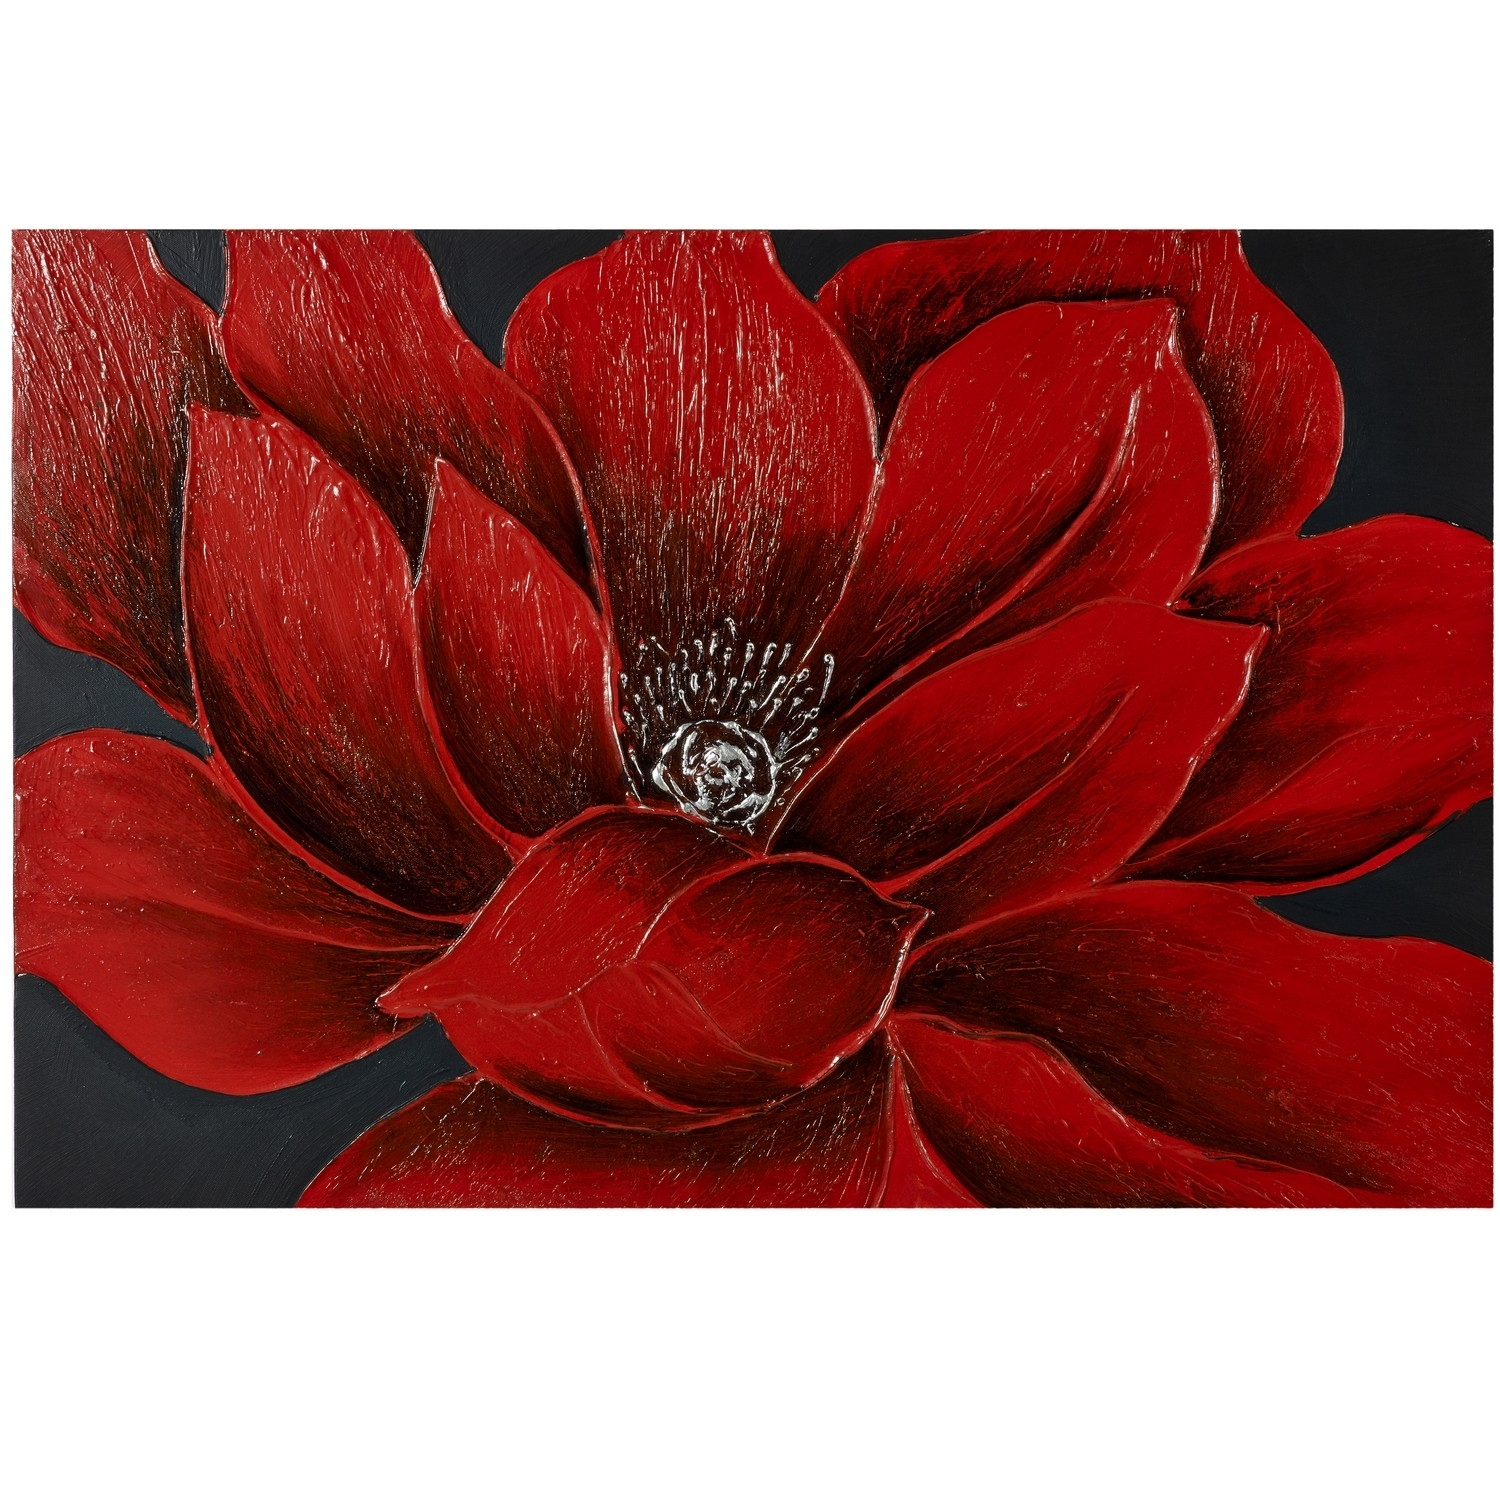 Wall Art: Beautiful Images About Red Flower Canvas Wall Art Large Within 2018 Red Flowers Canvas Wall Art (View 1 of 15)